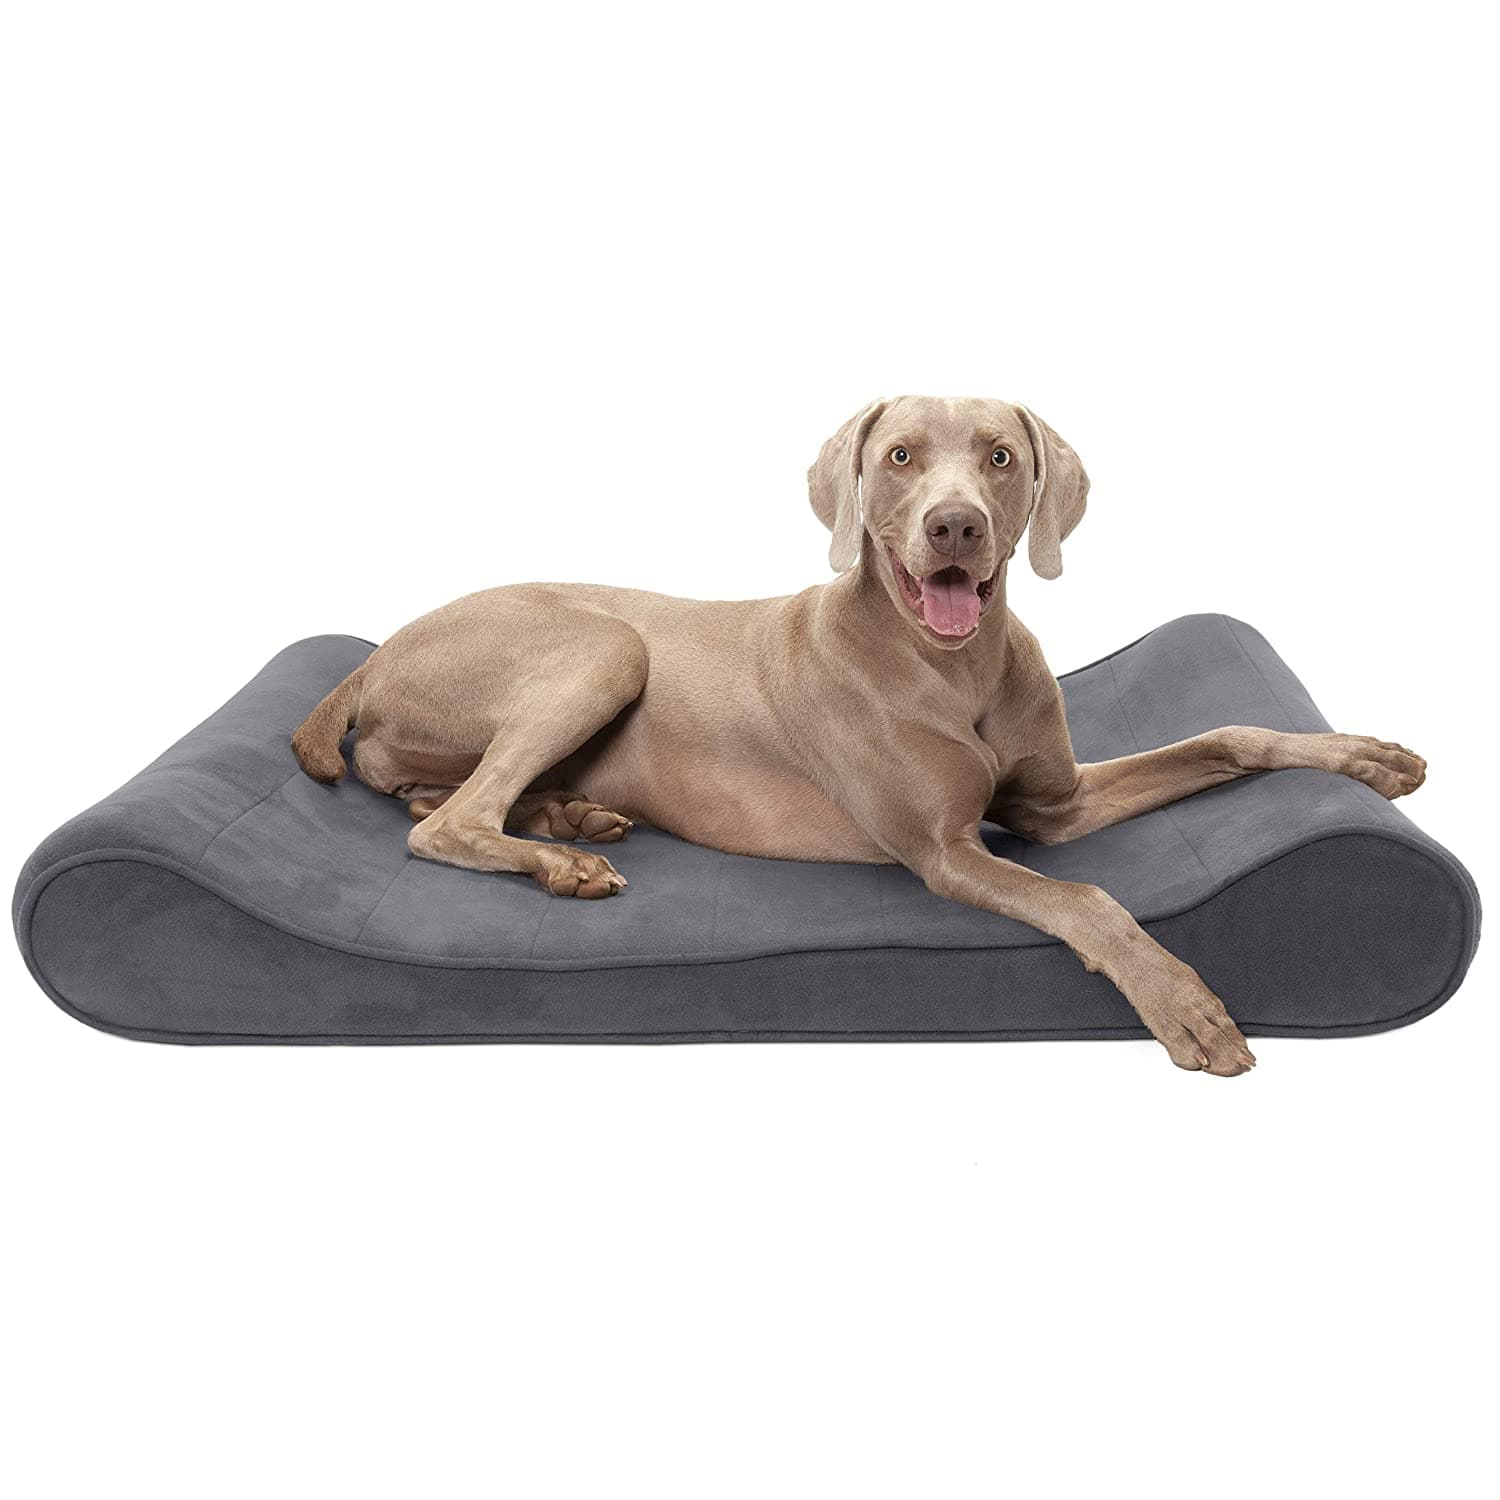 Furhaven Pet Dog Bed | Orthopedic Micro Velvet Ergonomic Luxe Lounger Cradle Mattress Contour Pet Bed for Dogs & Cats - [Orthopedic Foam] for $27